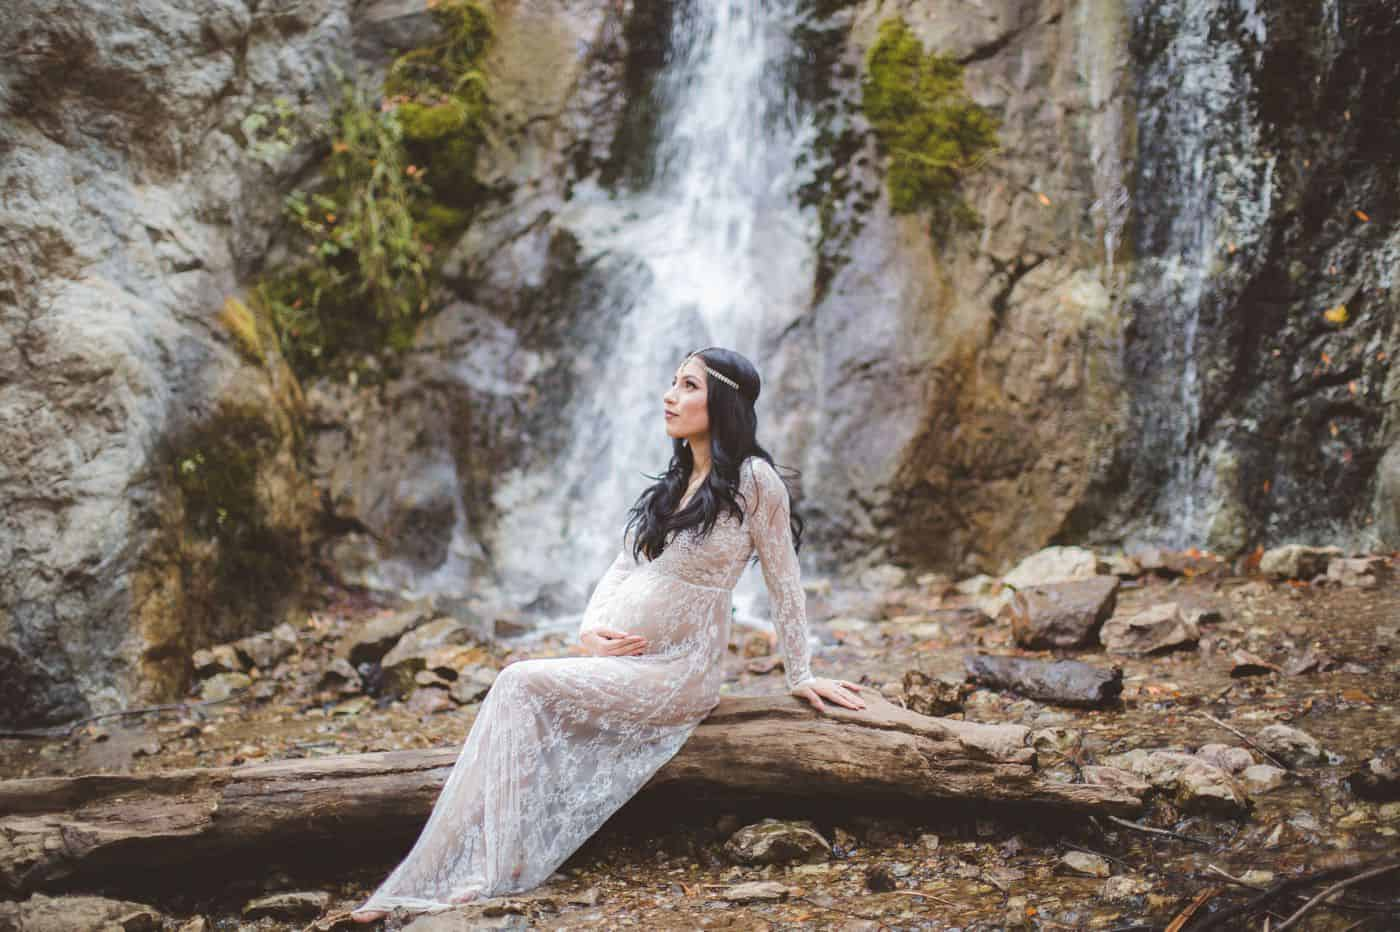 Vanessa Hicks photographs a pregnant mother sitting on a log in front of a waterfall.